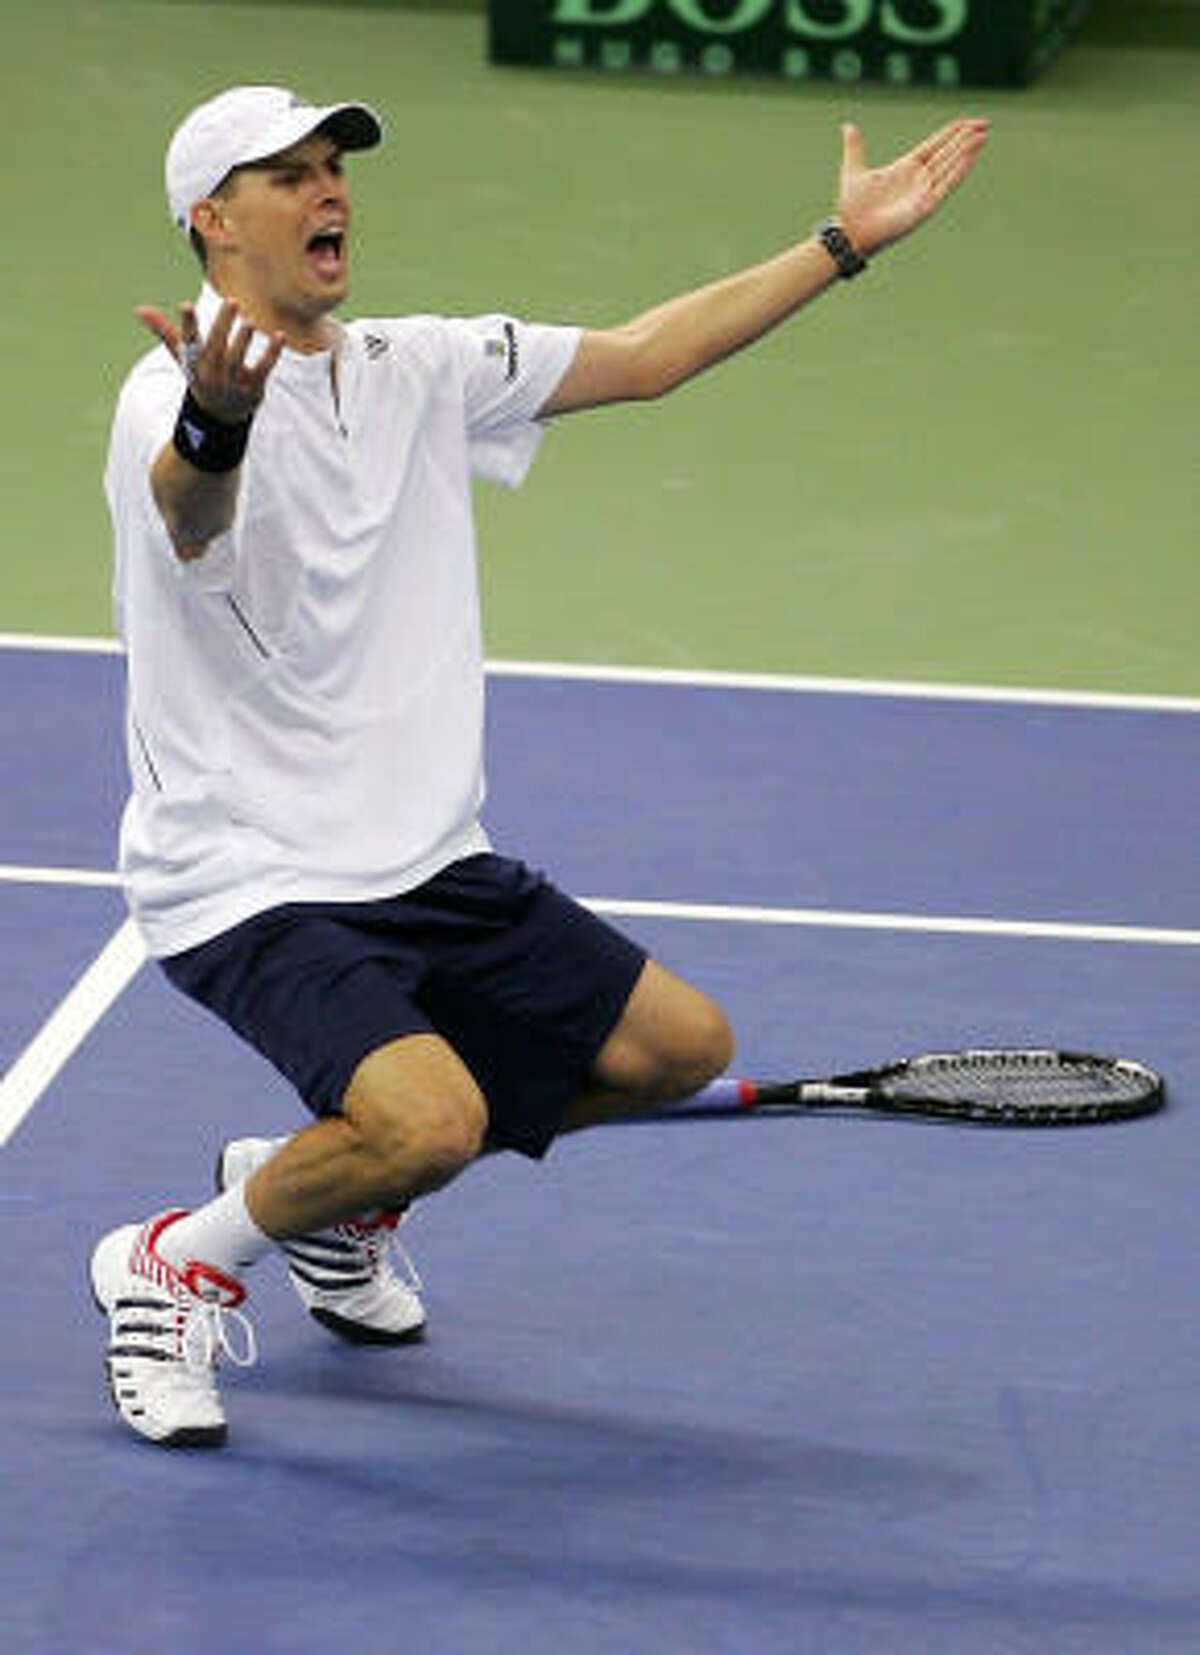 Mike Bryan celebrates his 7-6, 6-4, 6-2 victory with brother Bob Bryan over Igor Andreev and Nikolay Davydenko of Russia. Team USA defeated Russia 3-0 in the final.